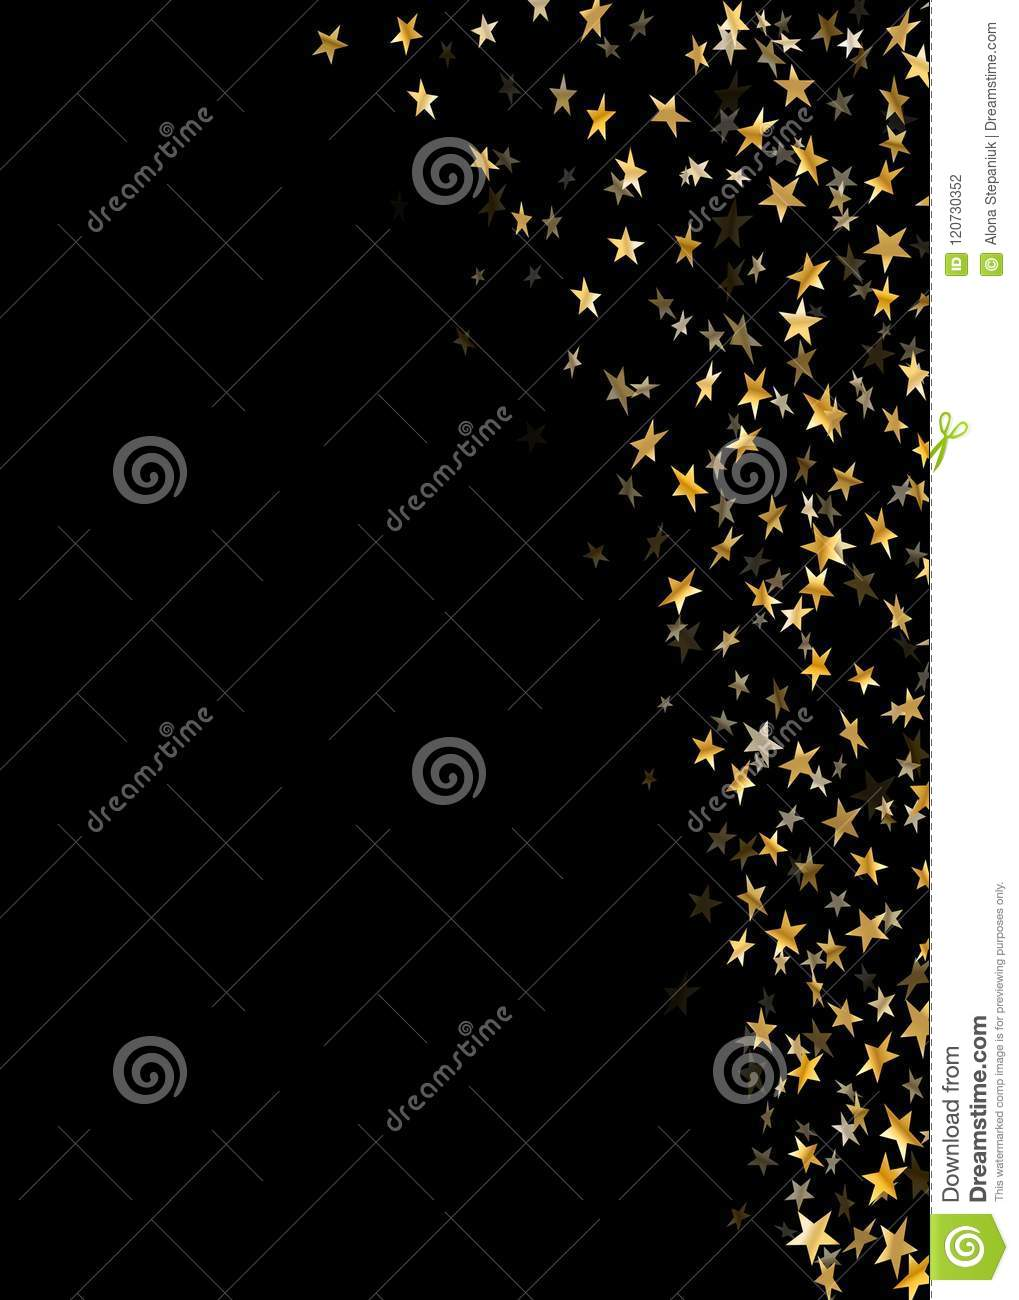 gold stars falling confetti isolated on black background golden abstract random pattern christmas card